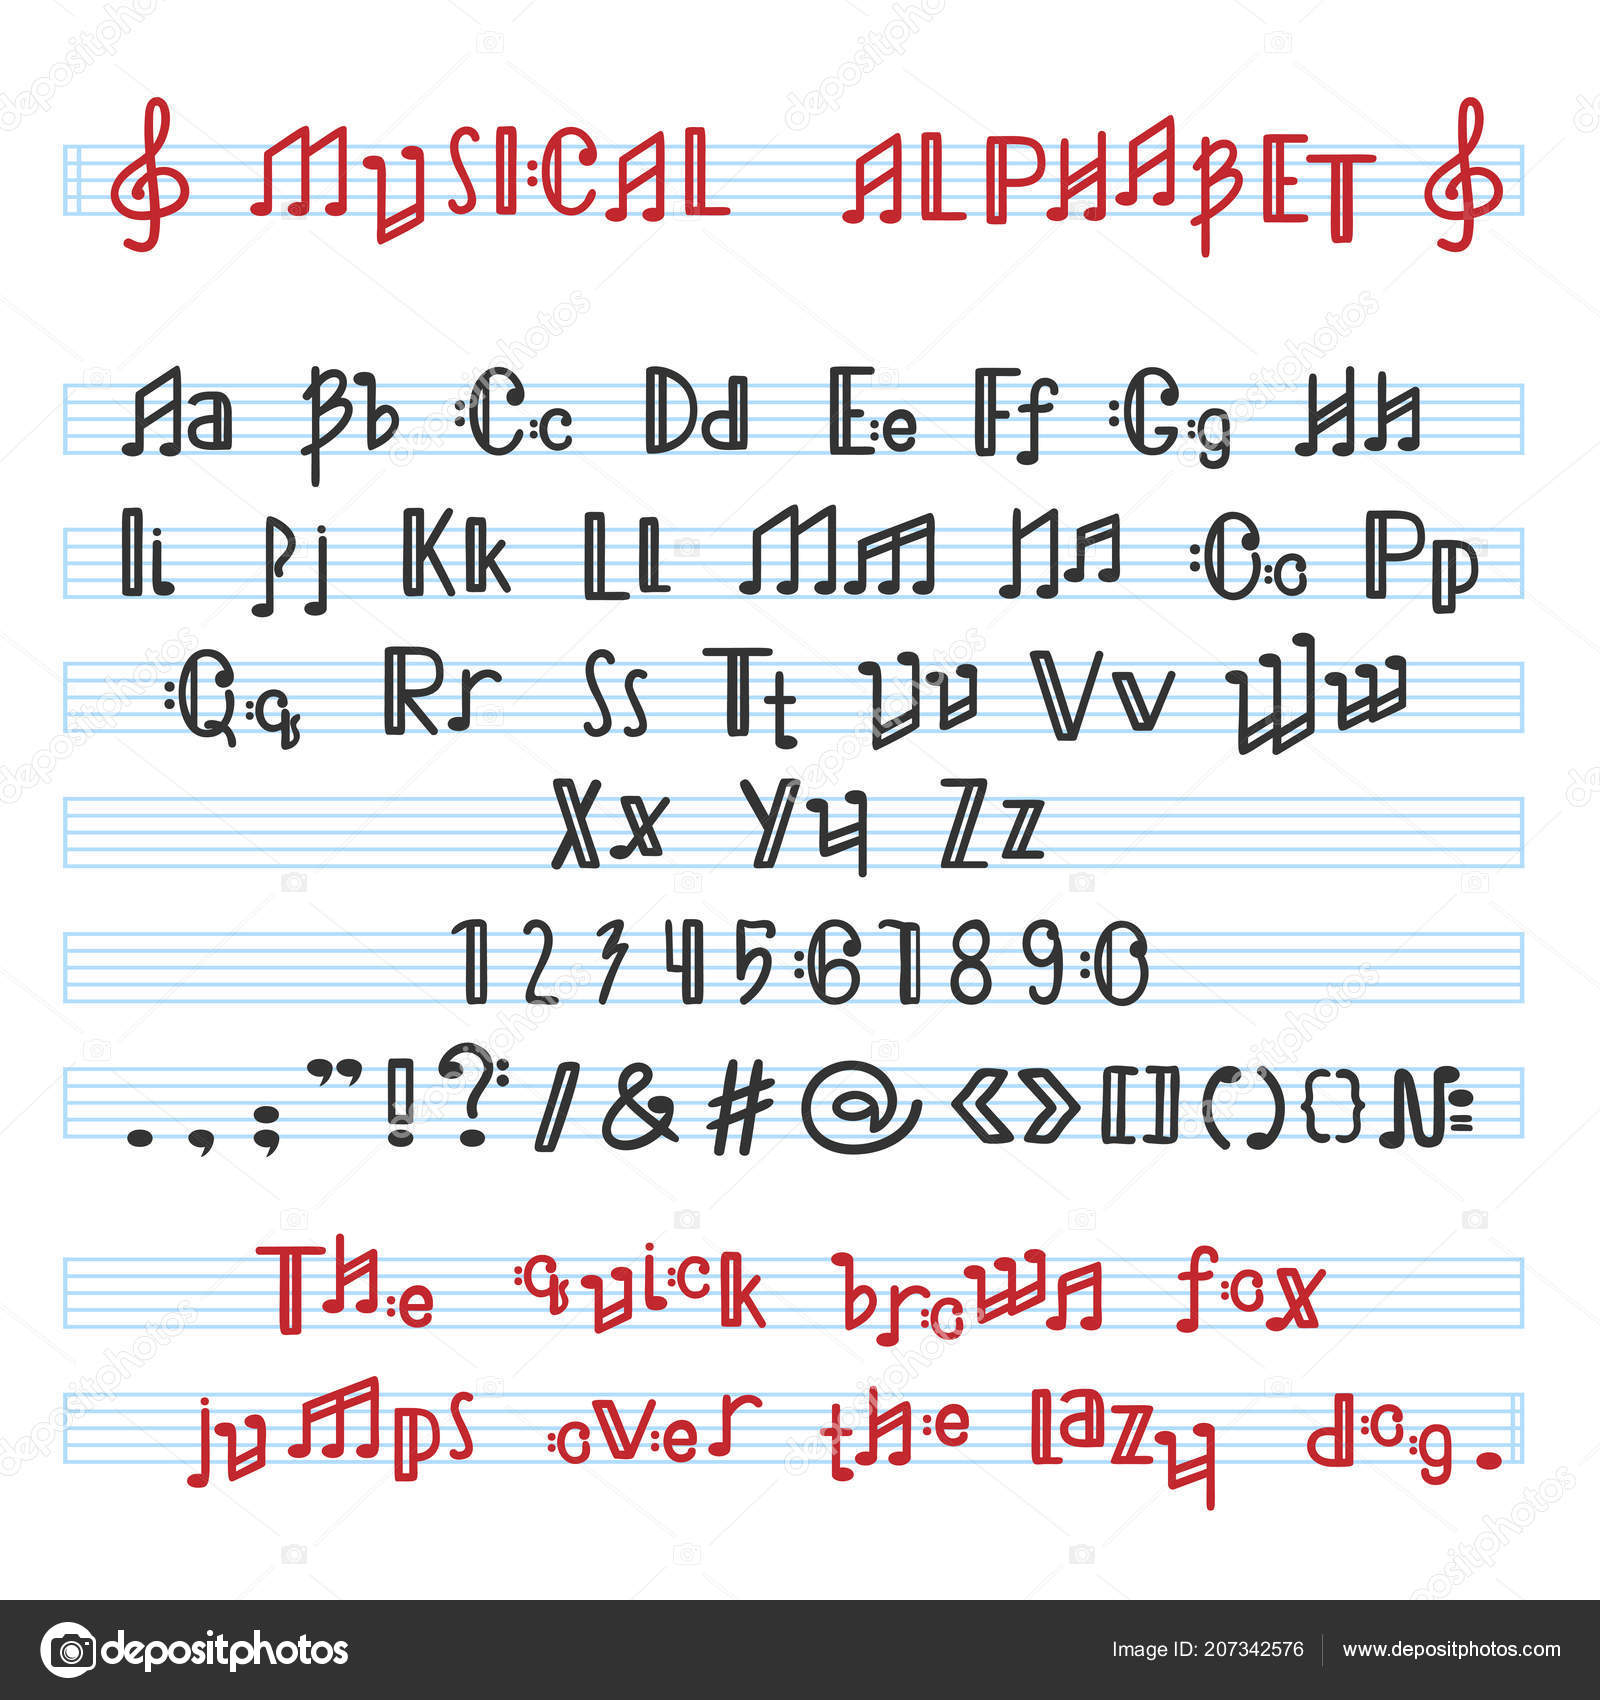 musical font music note letters alphabet alphabetical vector illustration typography alphabetic melody abc letter typeset alphabetically isolated vectordreamsmachine